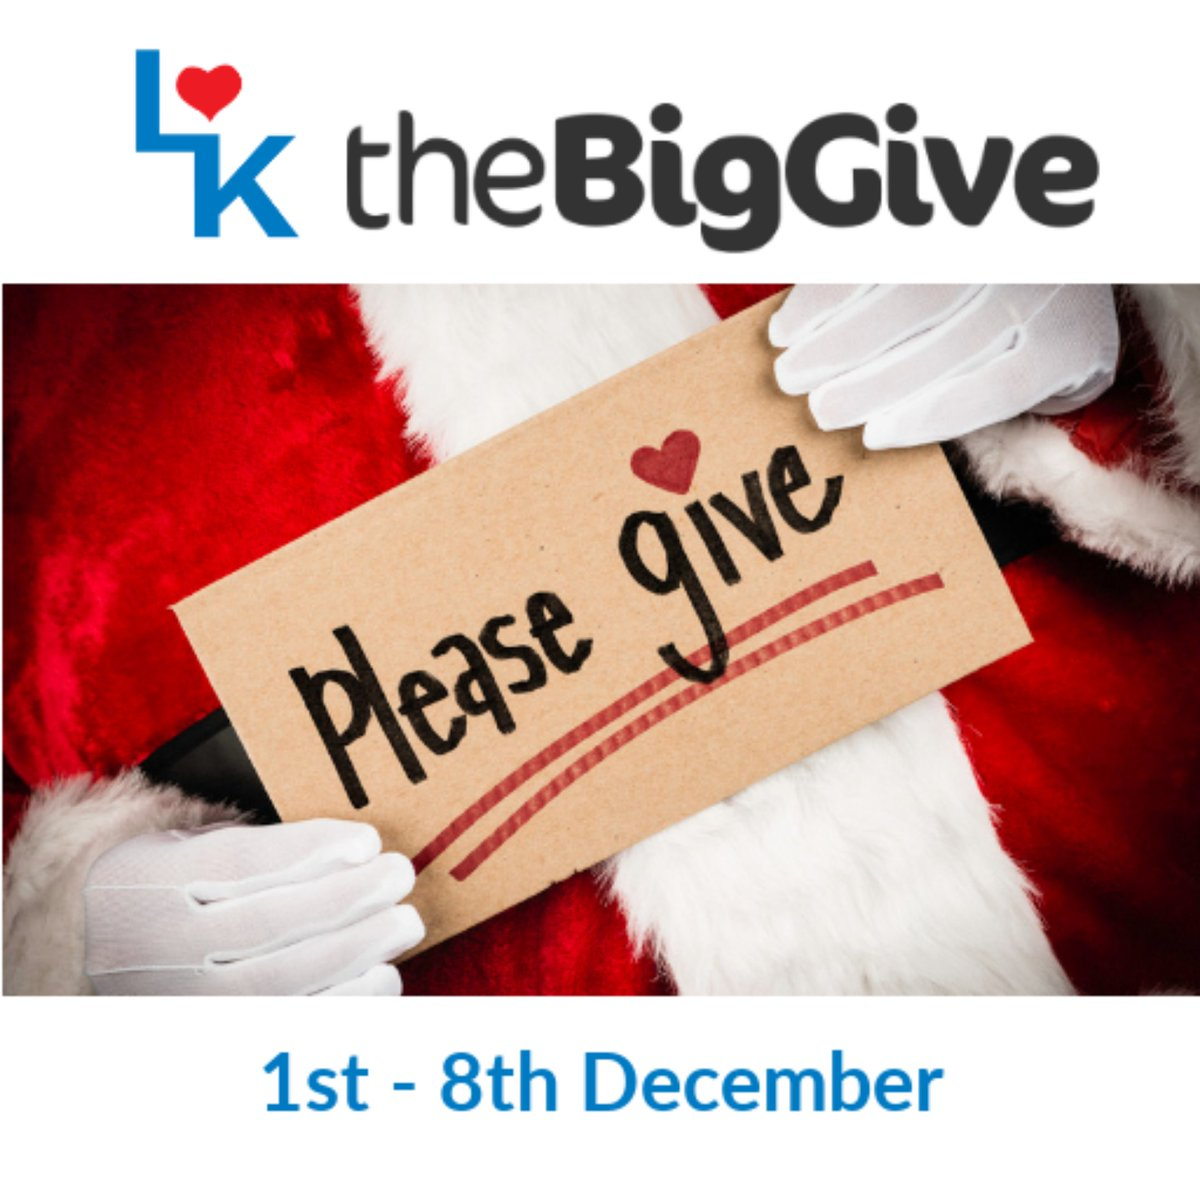 Please spare a thought for those who will really struggle this Christmas and consider making a donation to the Big Give on #givingtuesday2020  #LoveKingston #KingstonUponThames #KingstonStrongerTogether https://t.co/kEUea0JpKI https://t.co/CvXSzRH6nO